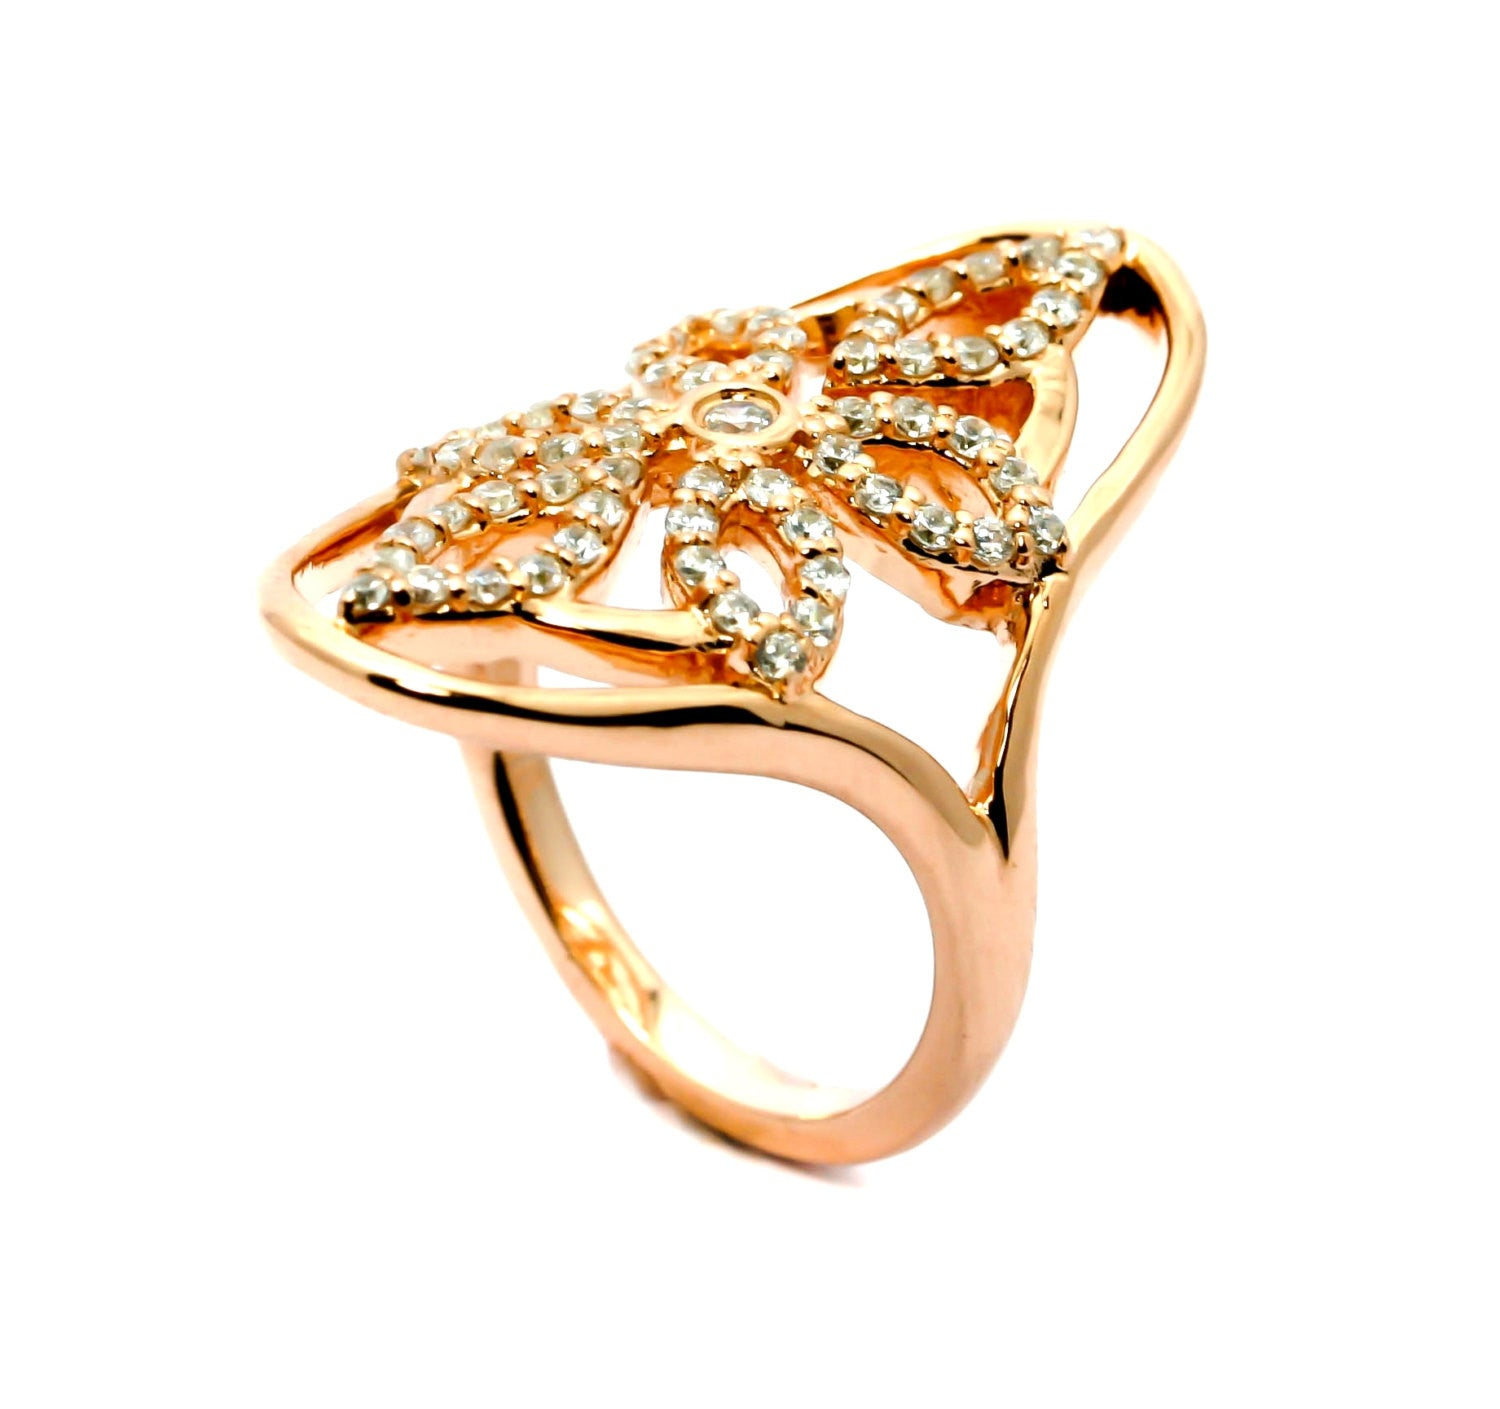 Unique Flower Design Diamond & Rose Gold Cocktail Ring, Goth Style - Y11669